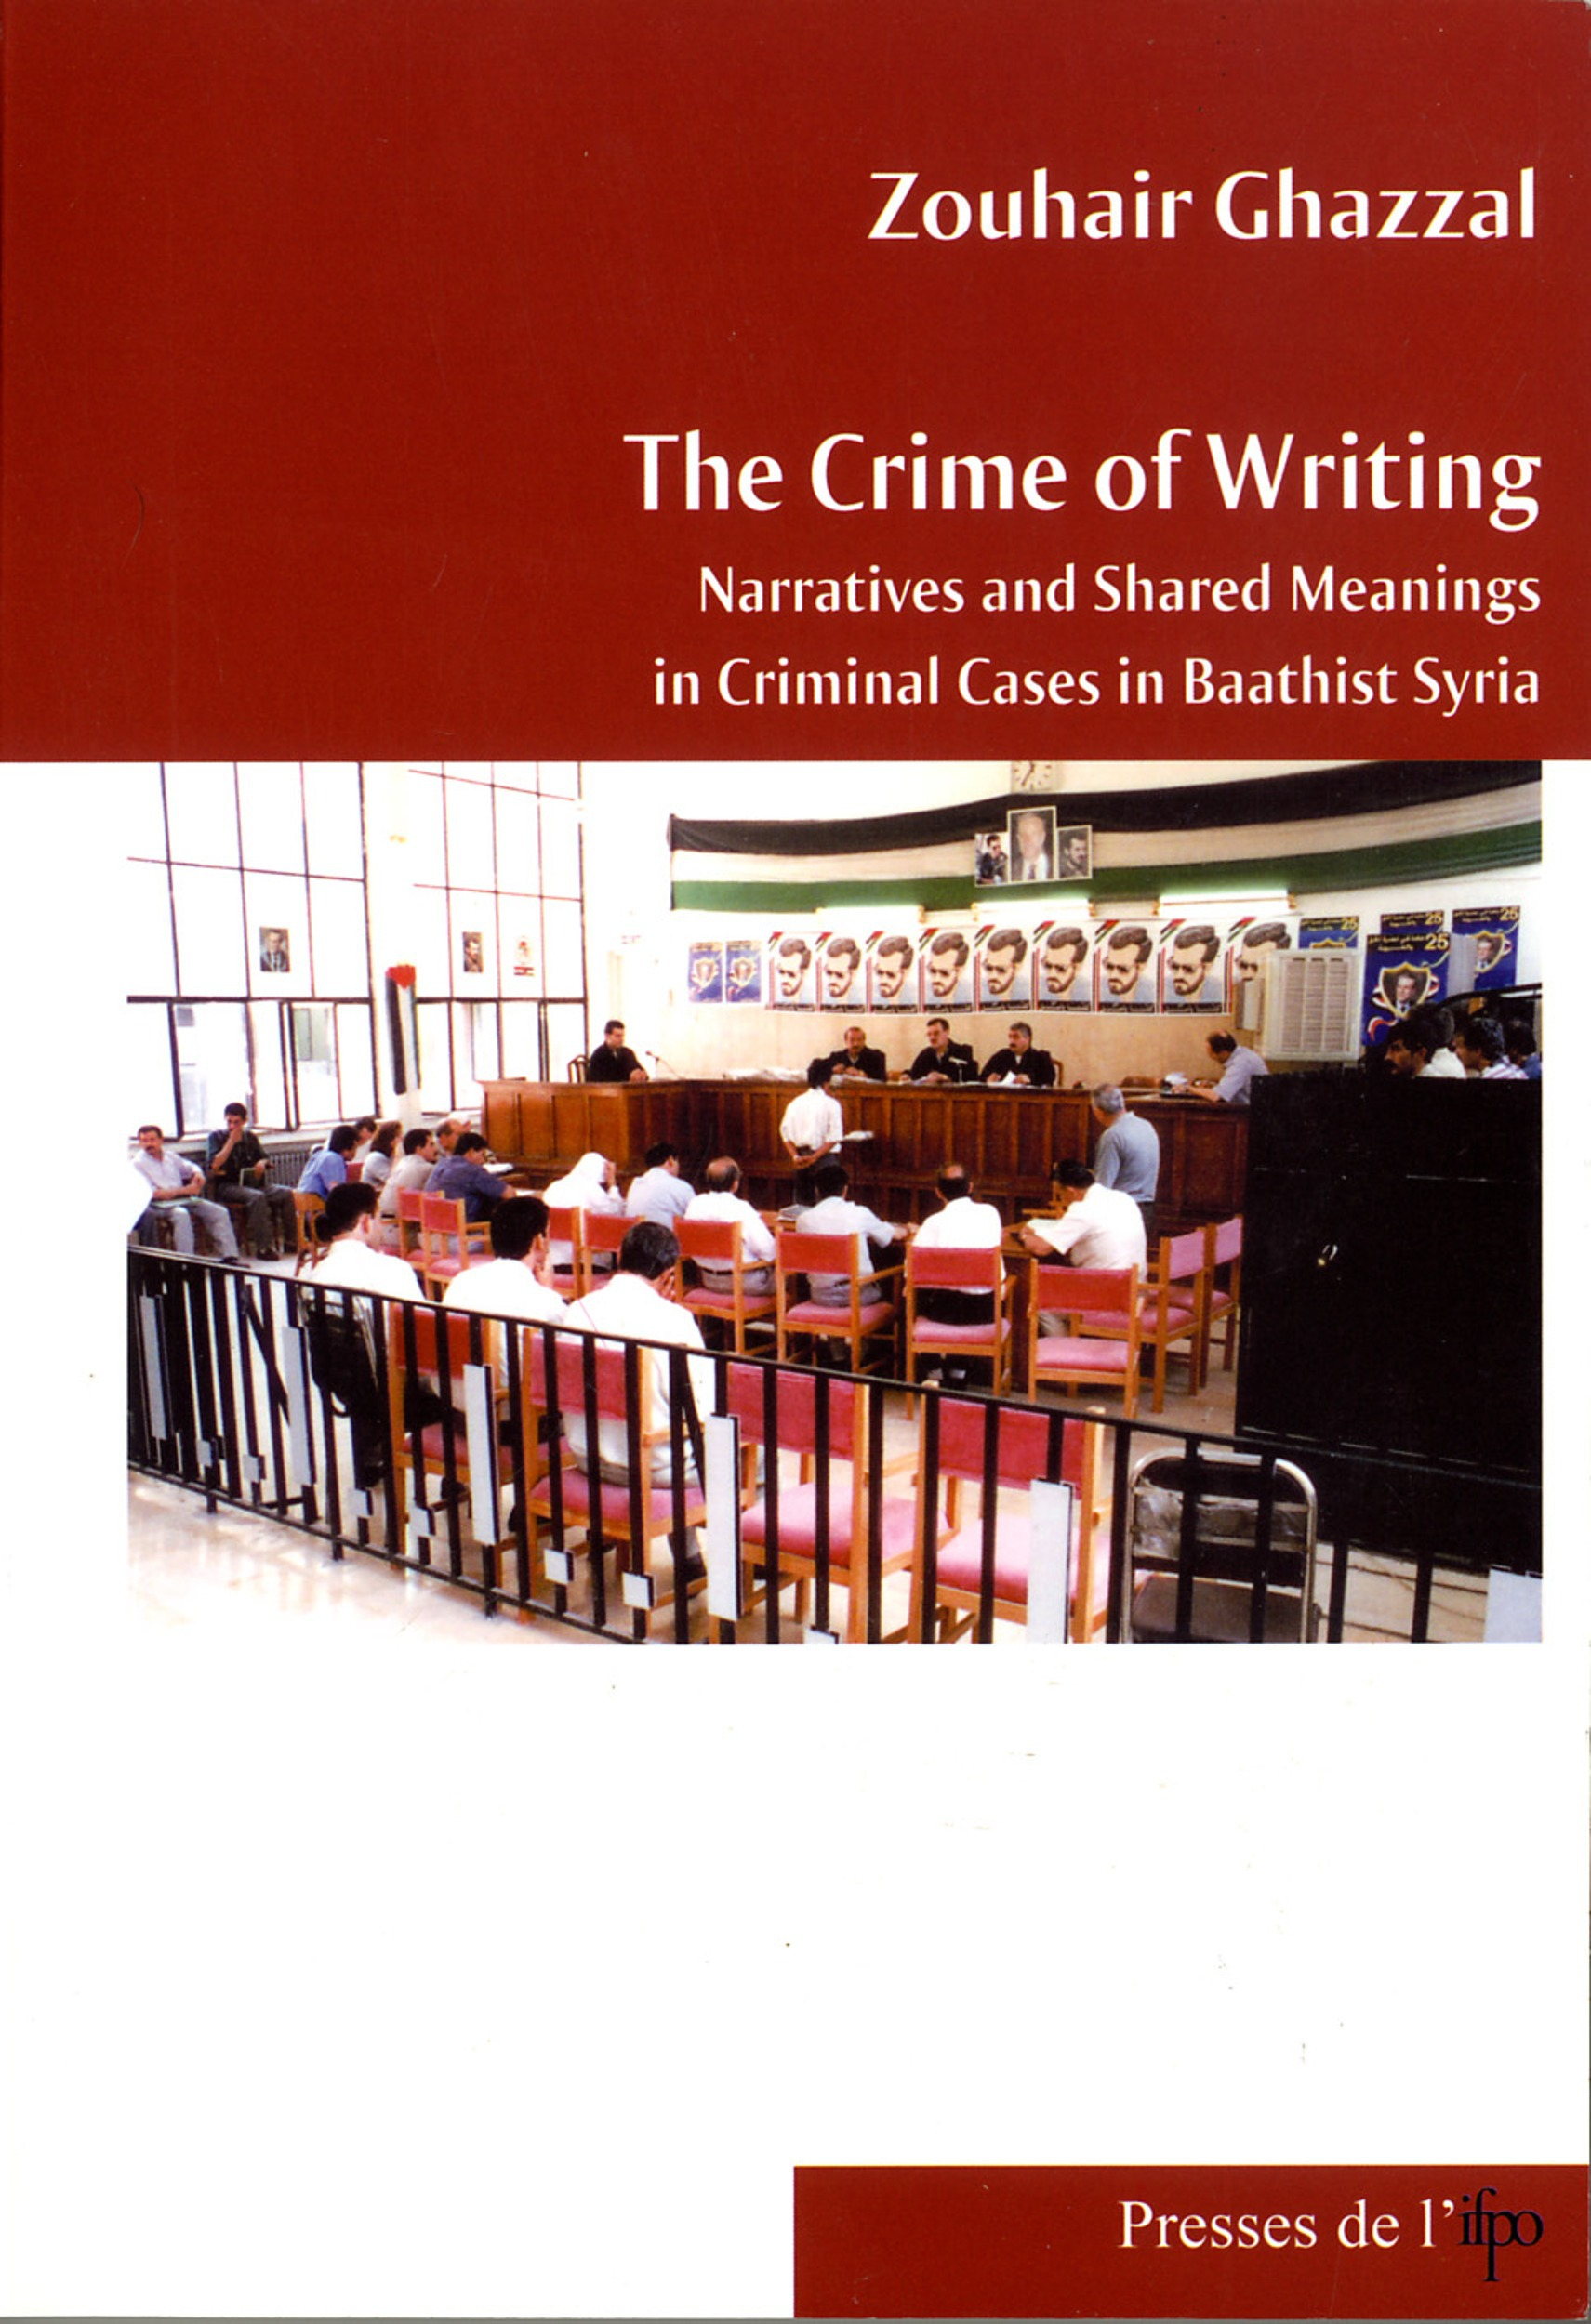 The crime of writting. narratives and shared meanings in criminal cases in baathist syria